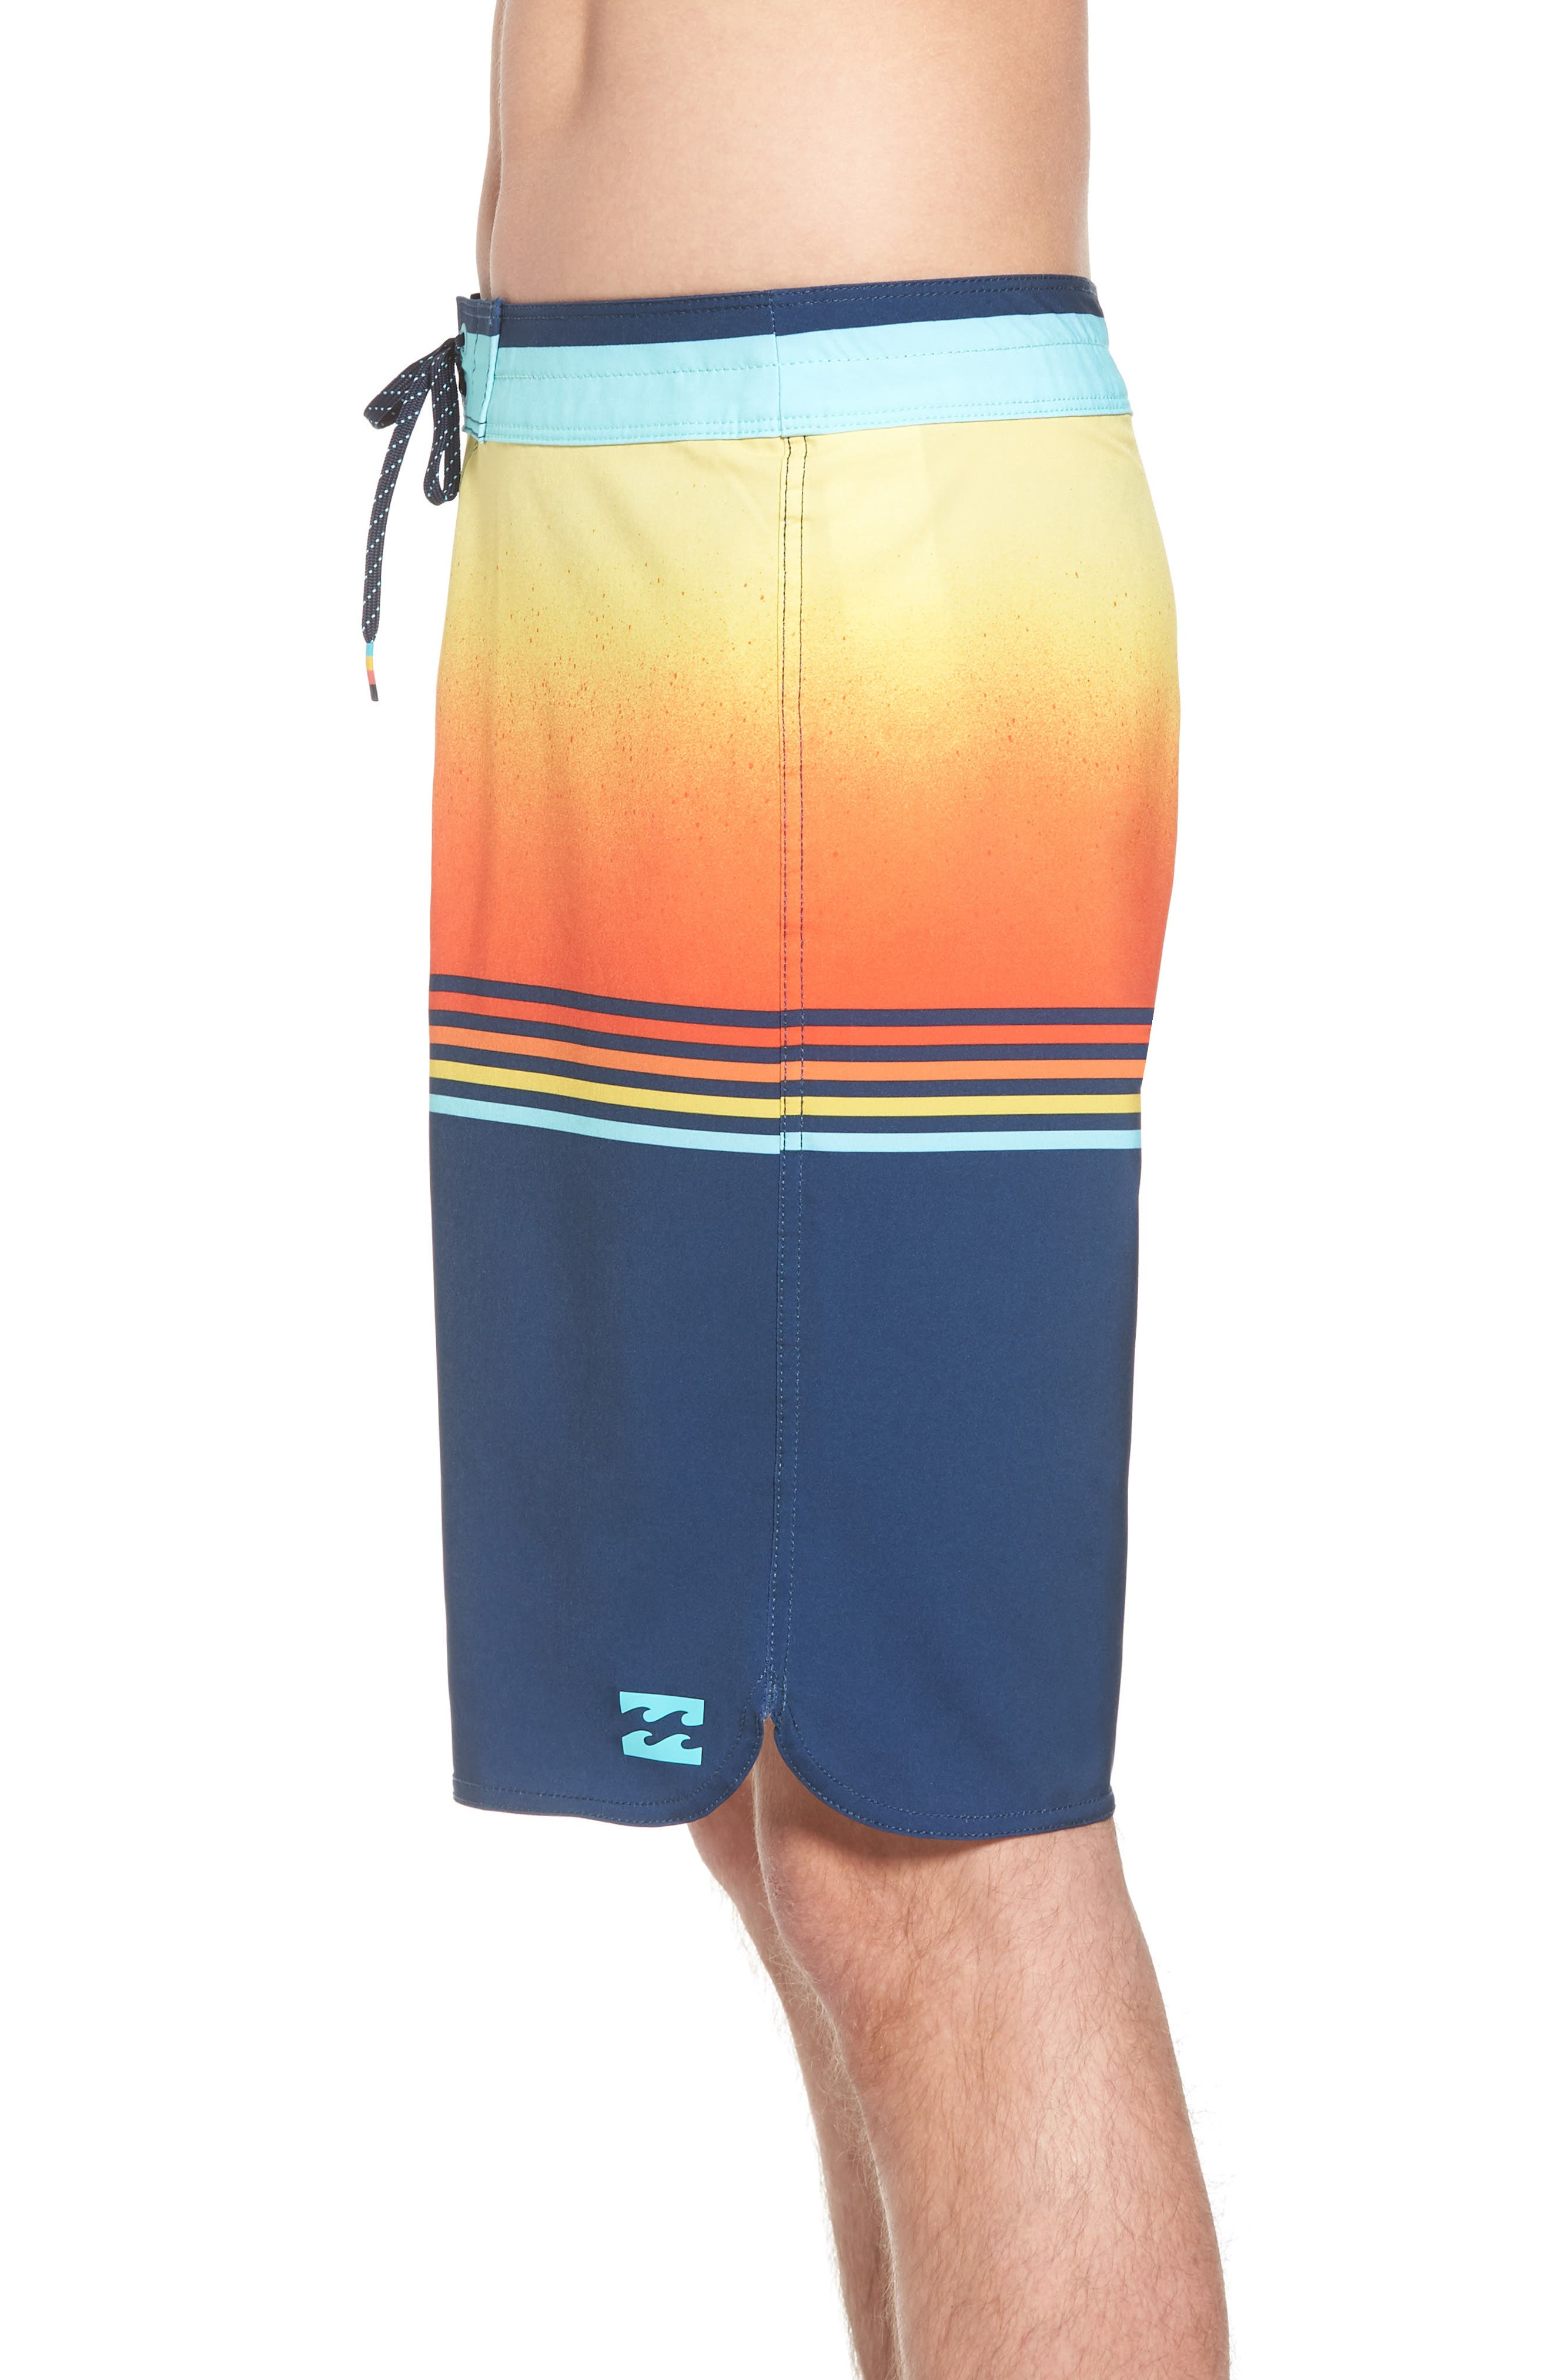 Fifty50 X Board Shorts,                             Alternate thumbnail 4, color,                             810